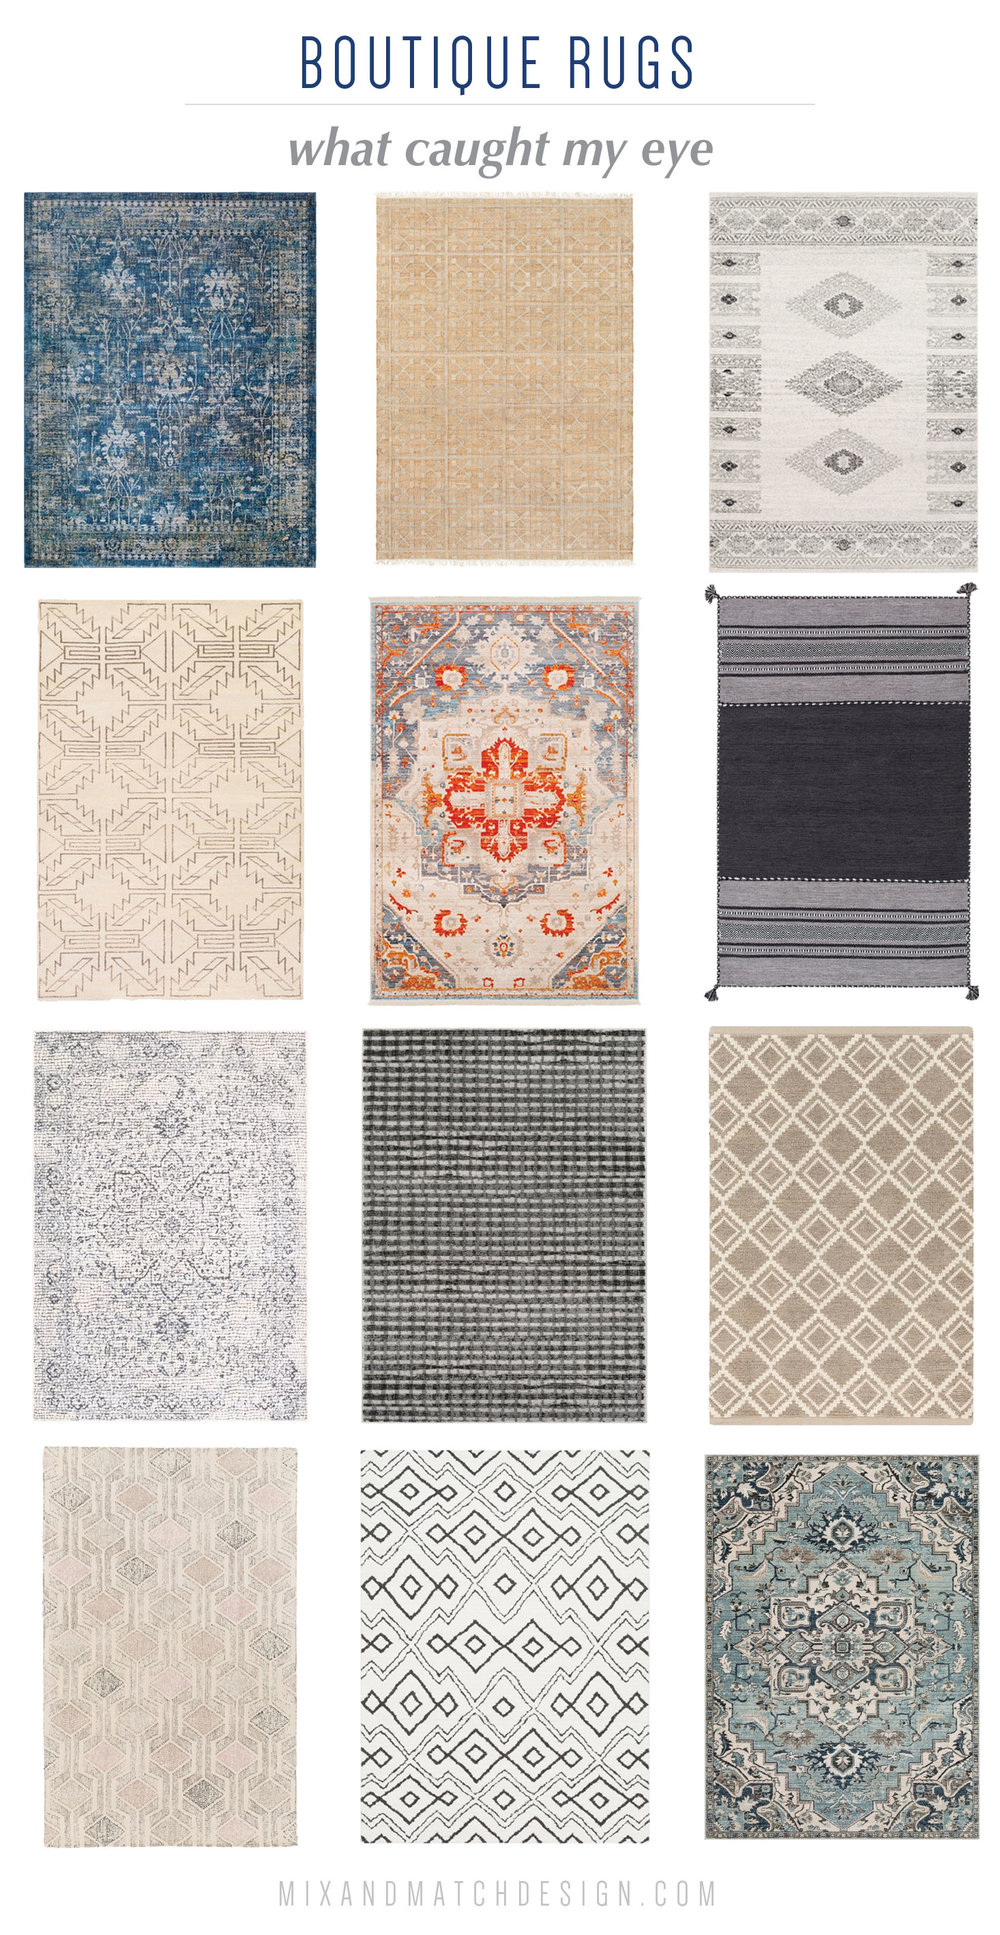 I love a good rug - it can be the finishing touch on a room! On the blog, I'm sharing a roundup of favorites from Boutique Rugs in different styles and colors. I've got Natural Fiber, New Traditional, Geometric, and more. Come on over!